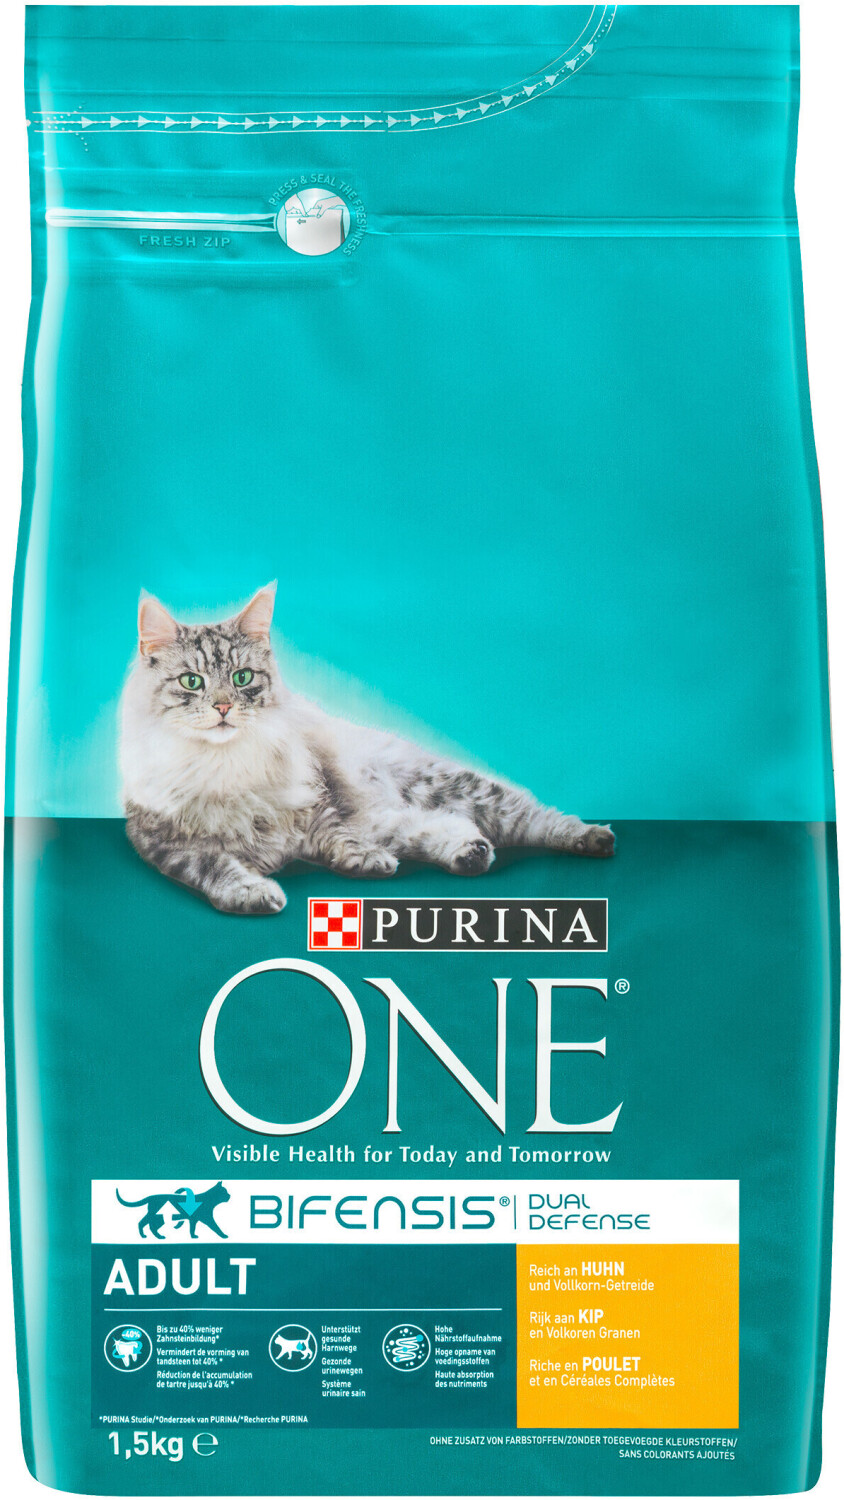 Image of Purina One Bifensis Adult